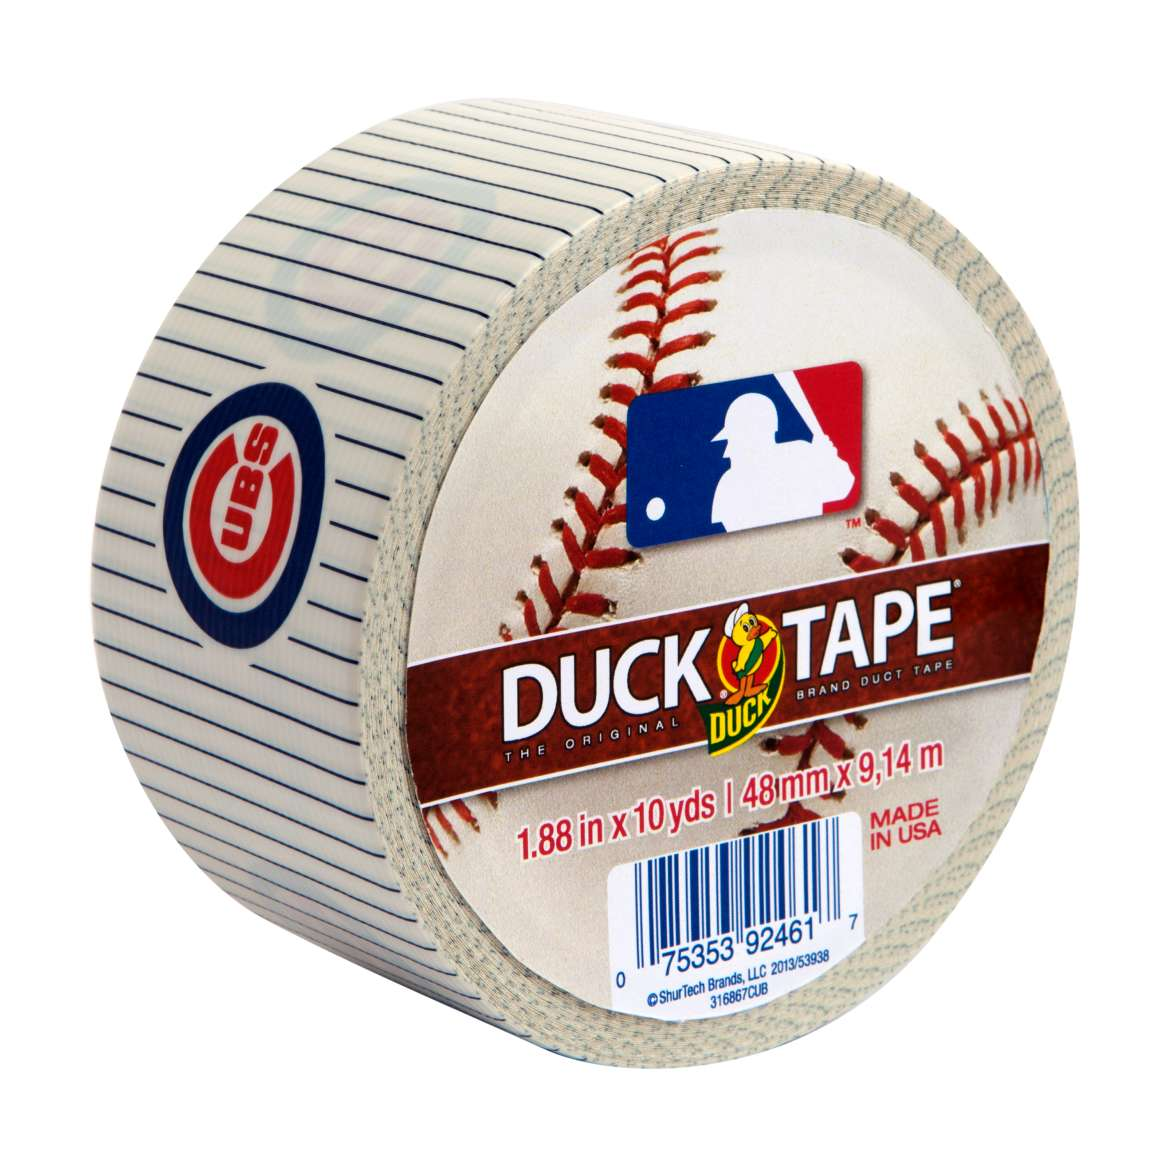 Duck Brand MLB Licensed Duct Tape, 1.88 in. x 10 yds., Chicago Cubs